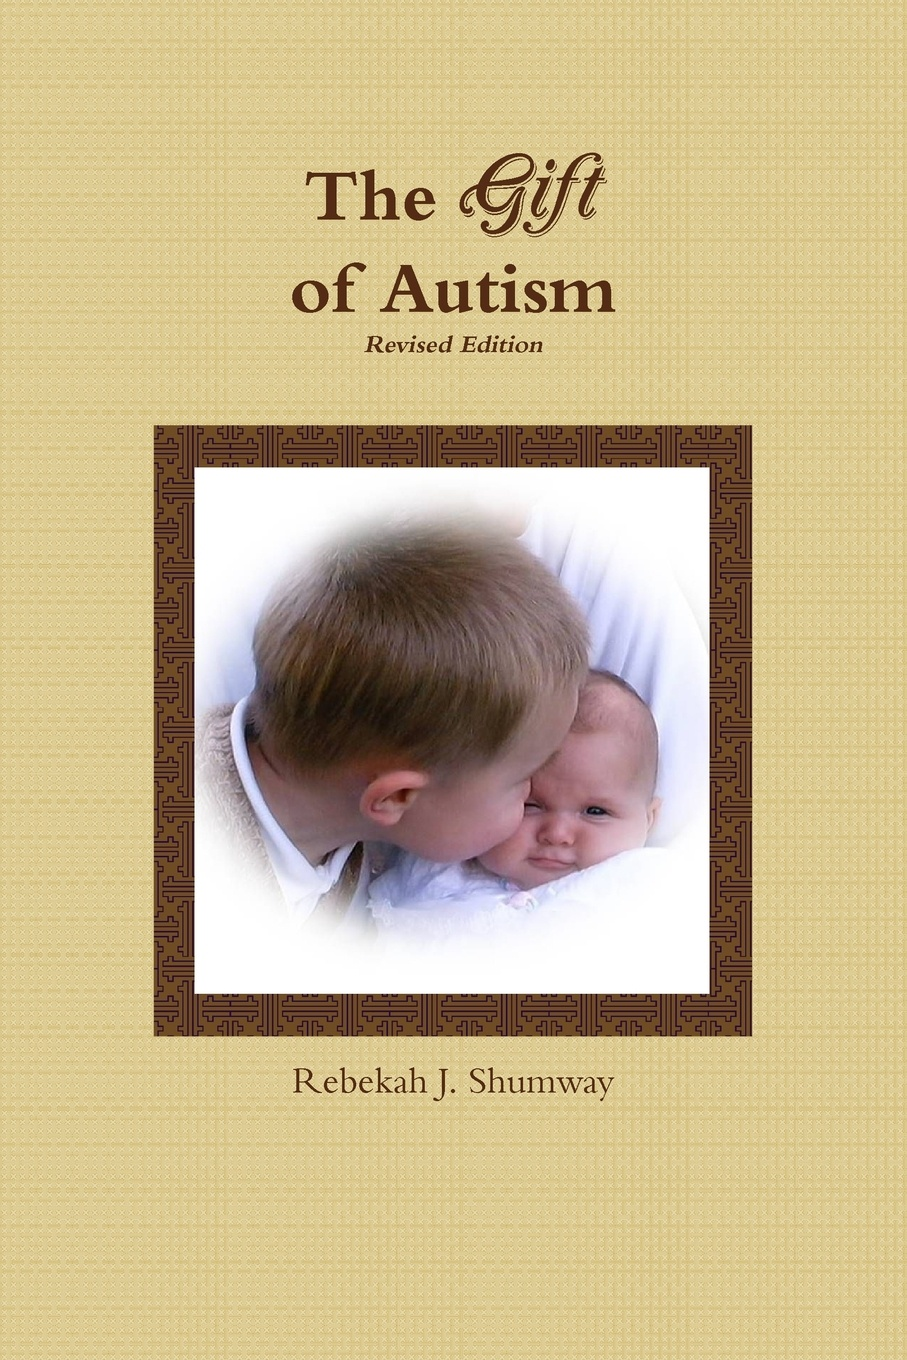 Rebekah J. Shumway The Gift of Autism angela gachassin autism healed for life